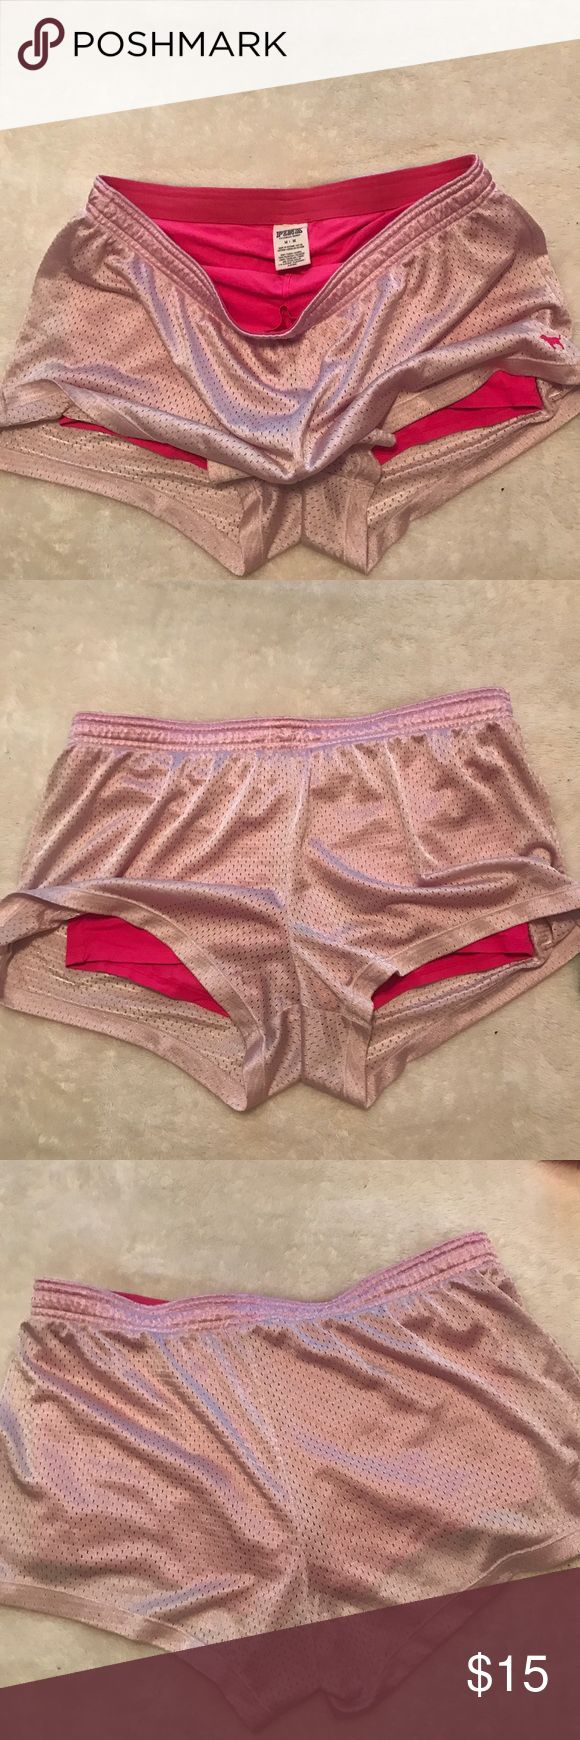 VS PINK Running Shorts (2 layers attached) Super comfy running mesh shorts with hot pink shorts underneath attached to each other. Good condition PINK Victoria's Secret Shorts